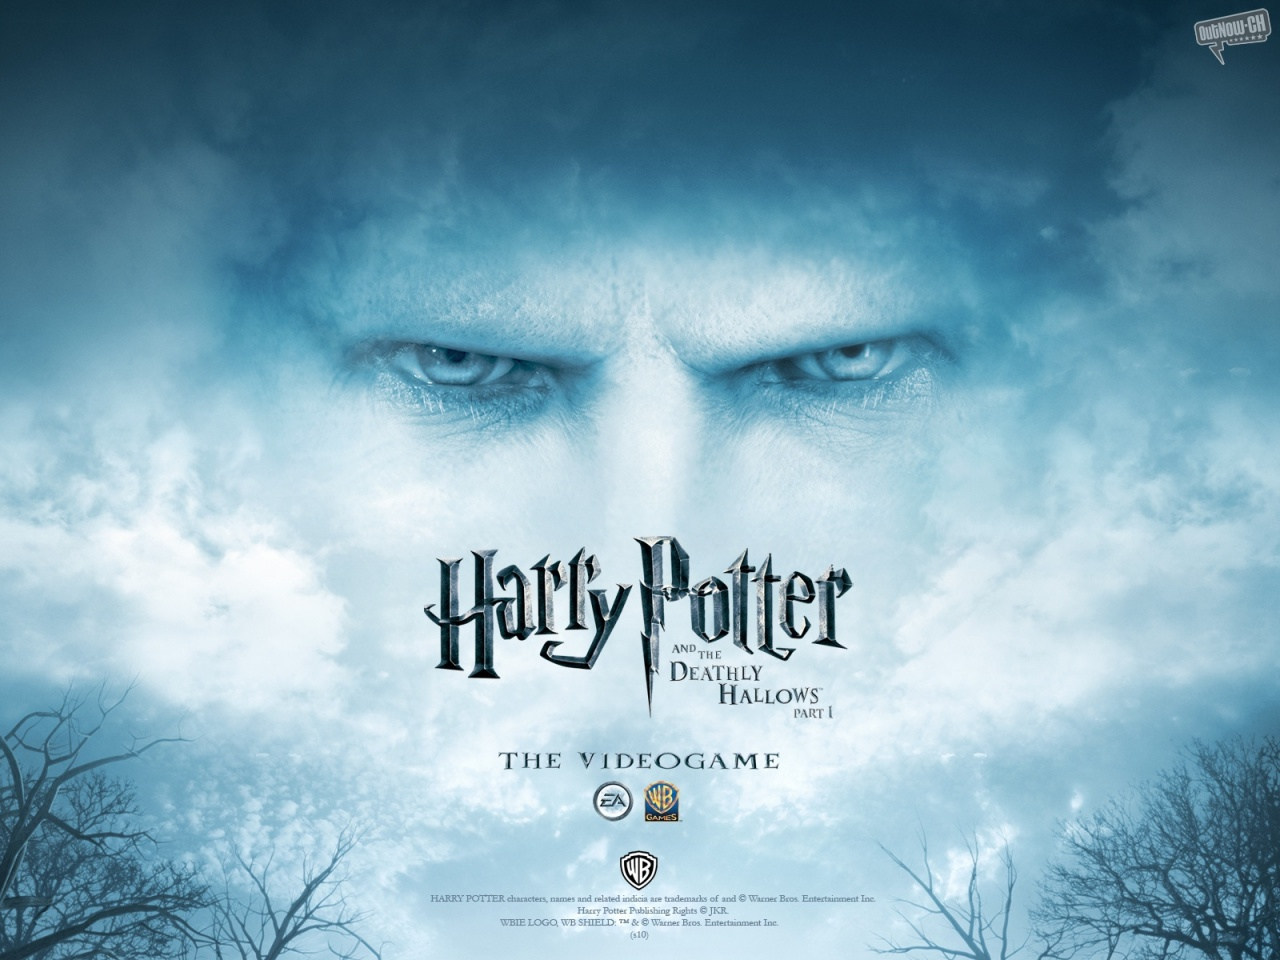 Beautiful Wallpaper Mac Harry Potter - harry-potter%3A-deathly-hallows_wallpapers_24921_1280x960  Best Photo Reference_164761.jpg